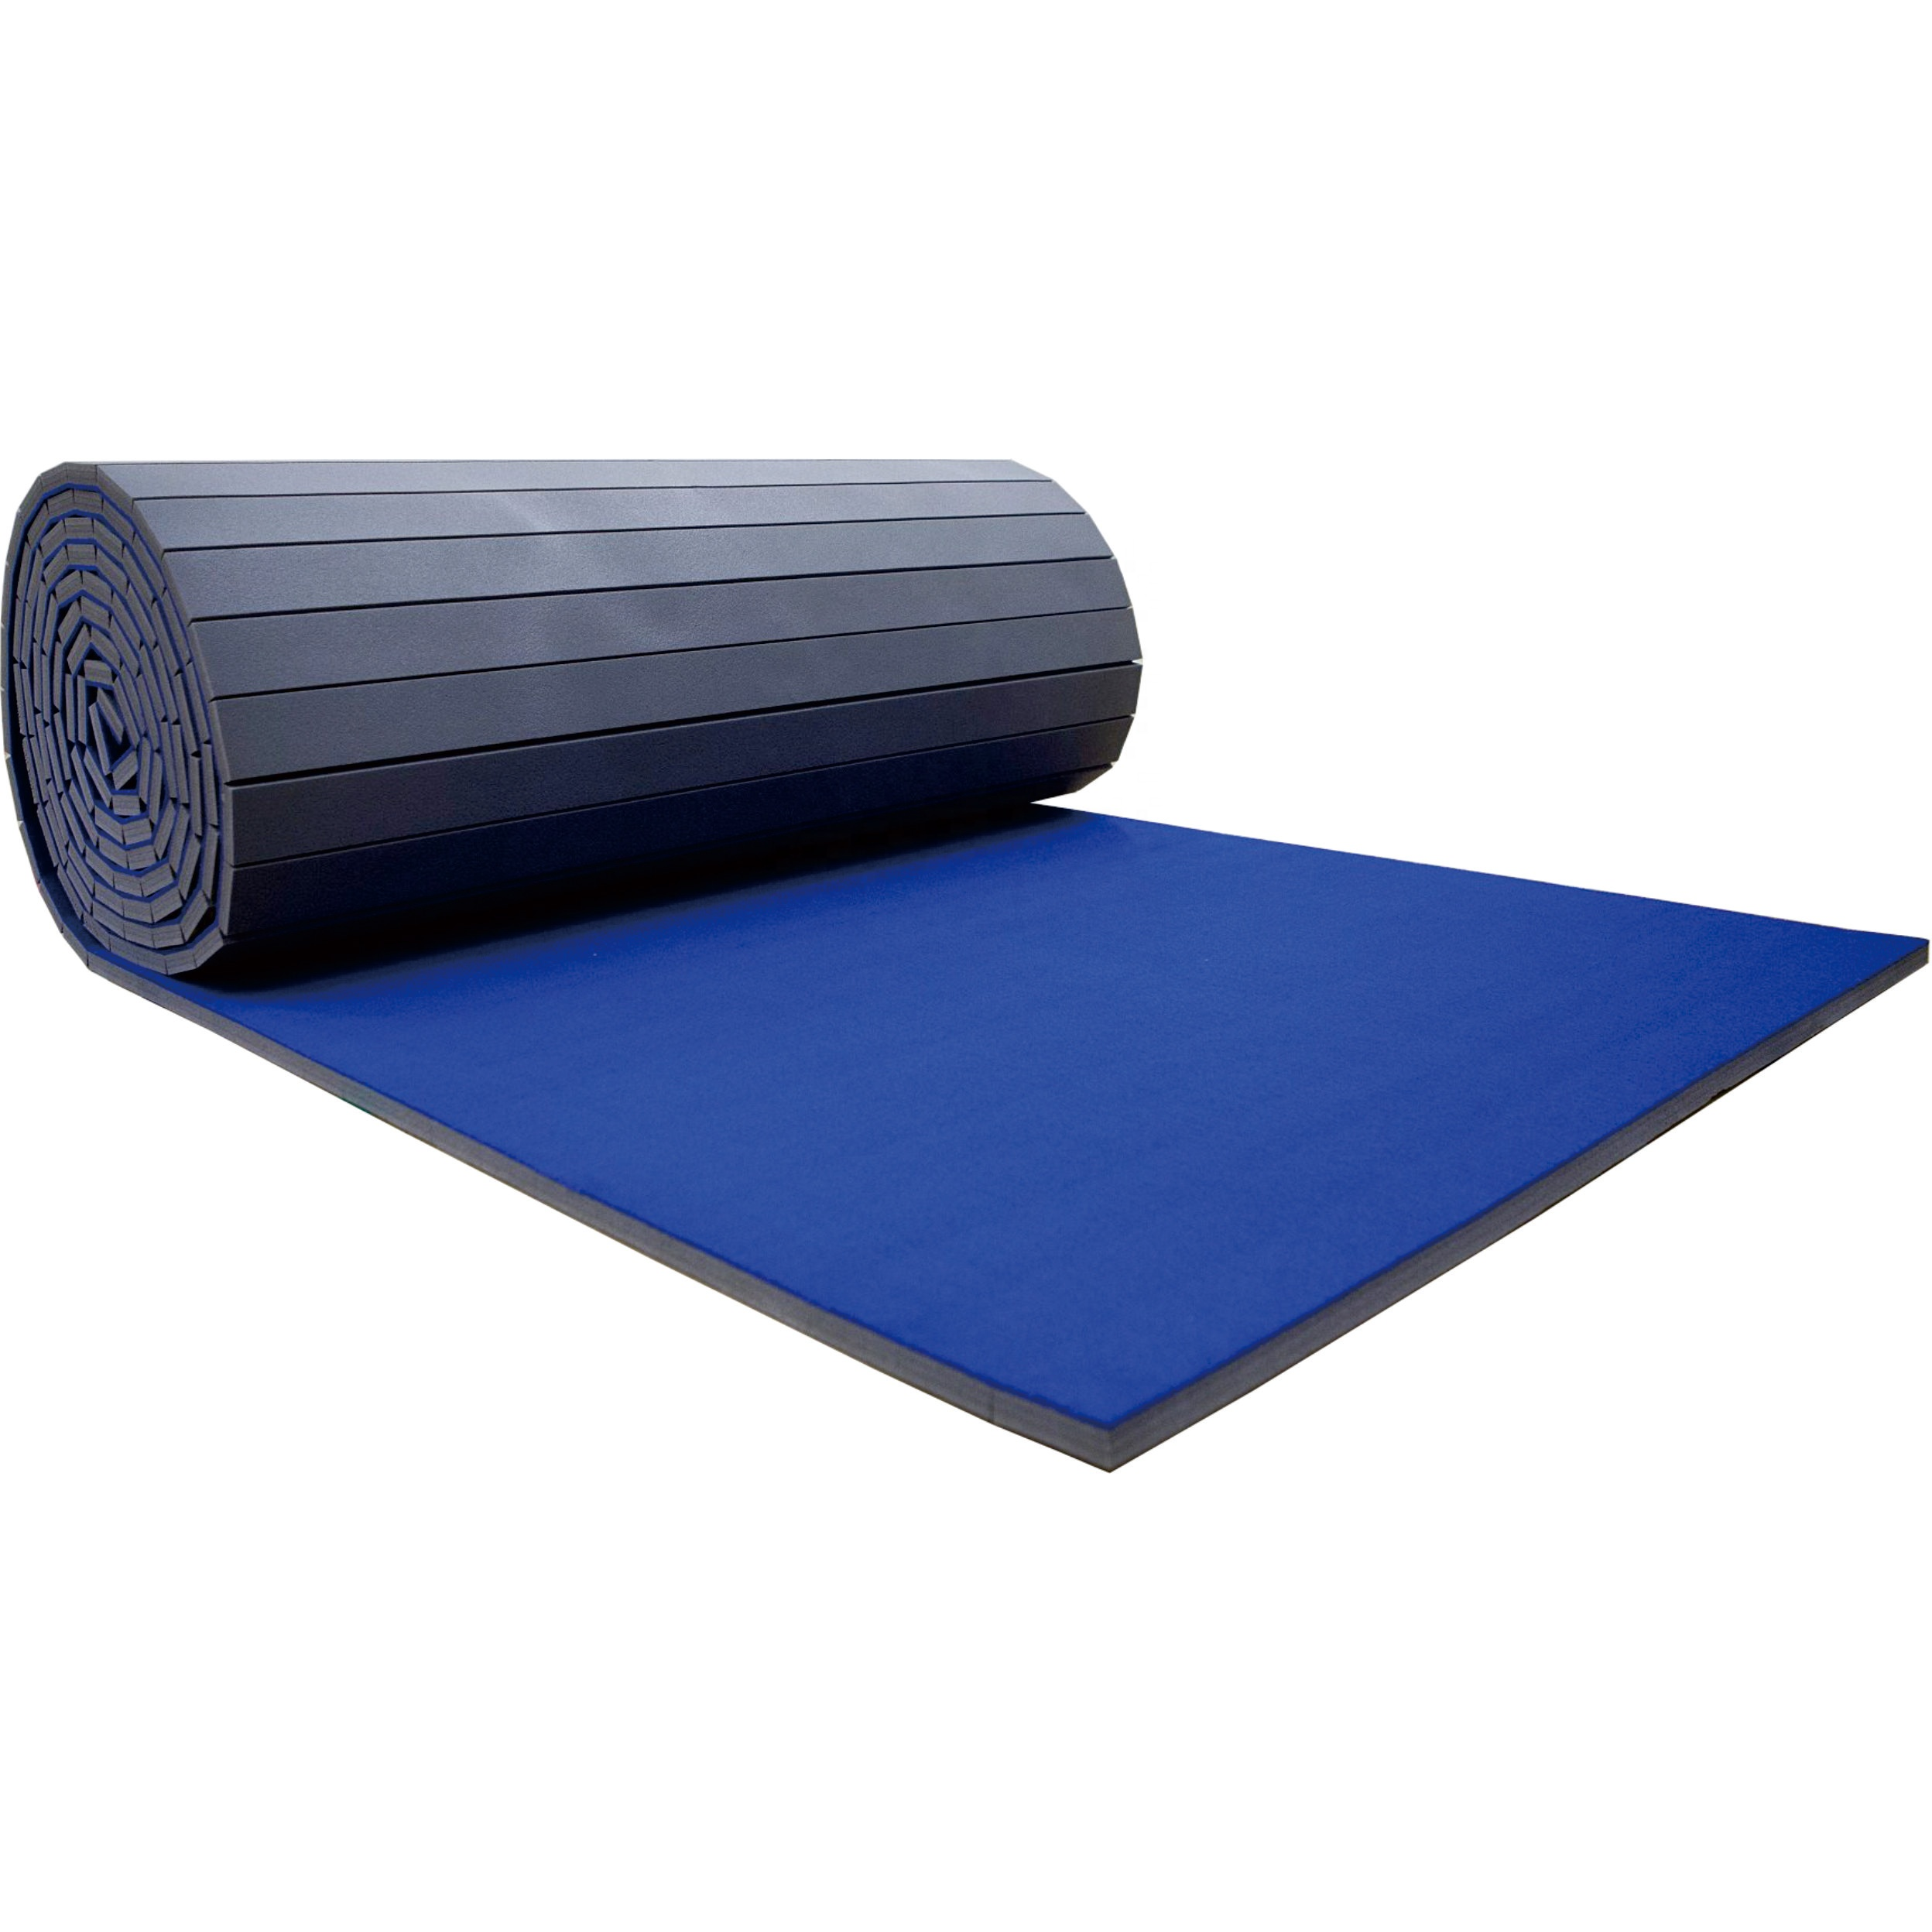 Crash Mats Australia Wholesale Blue Gymnastics Crash Rolled Up Mat Used For Cheerleading